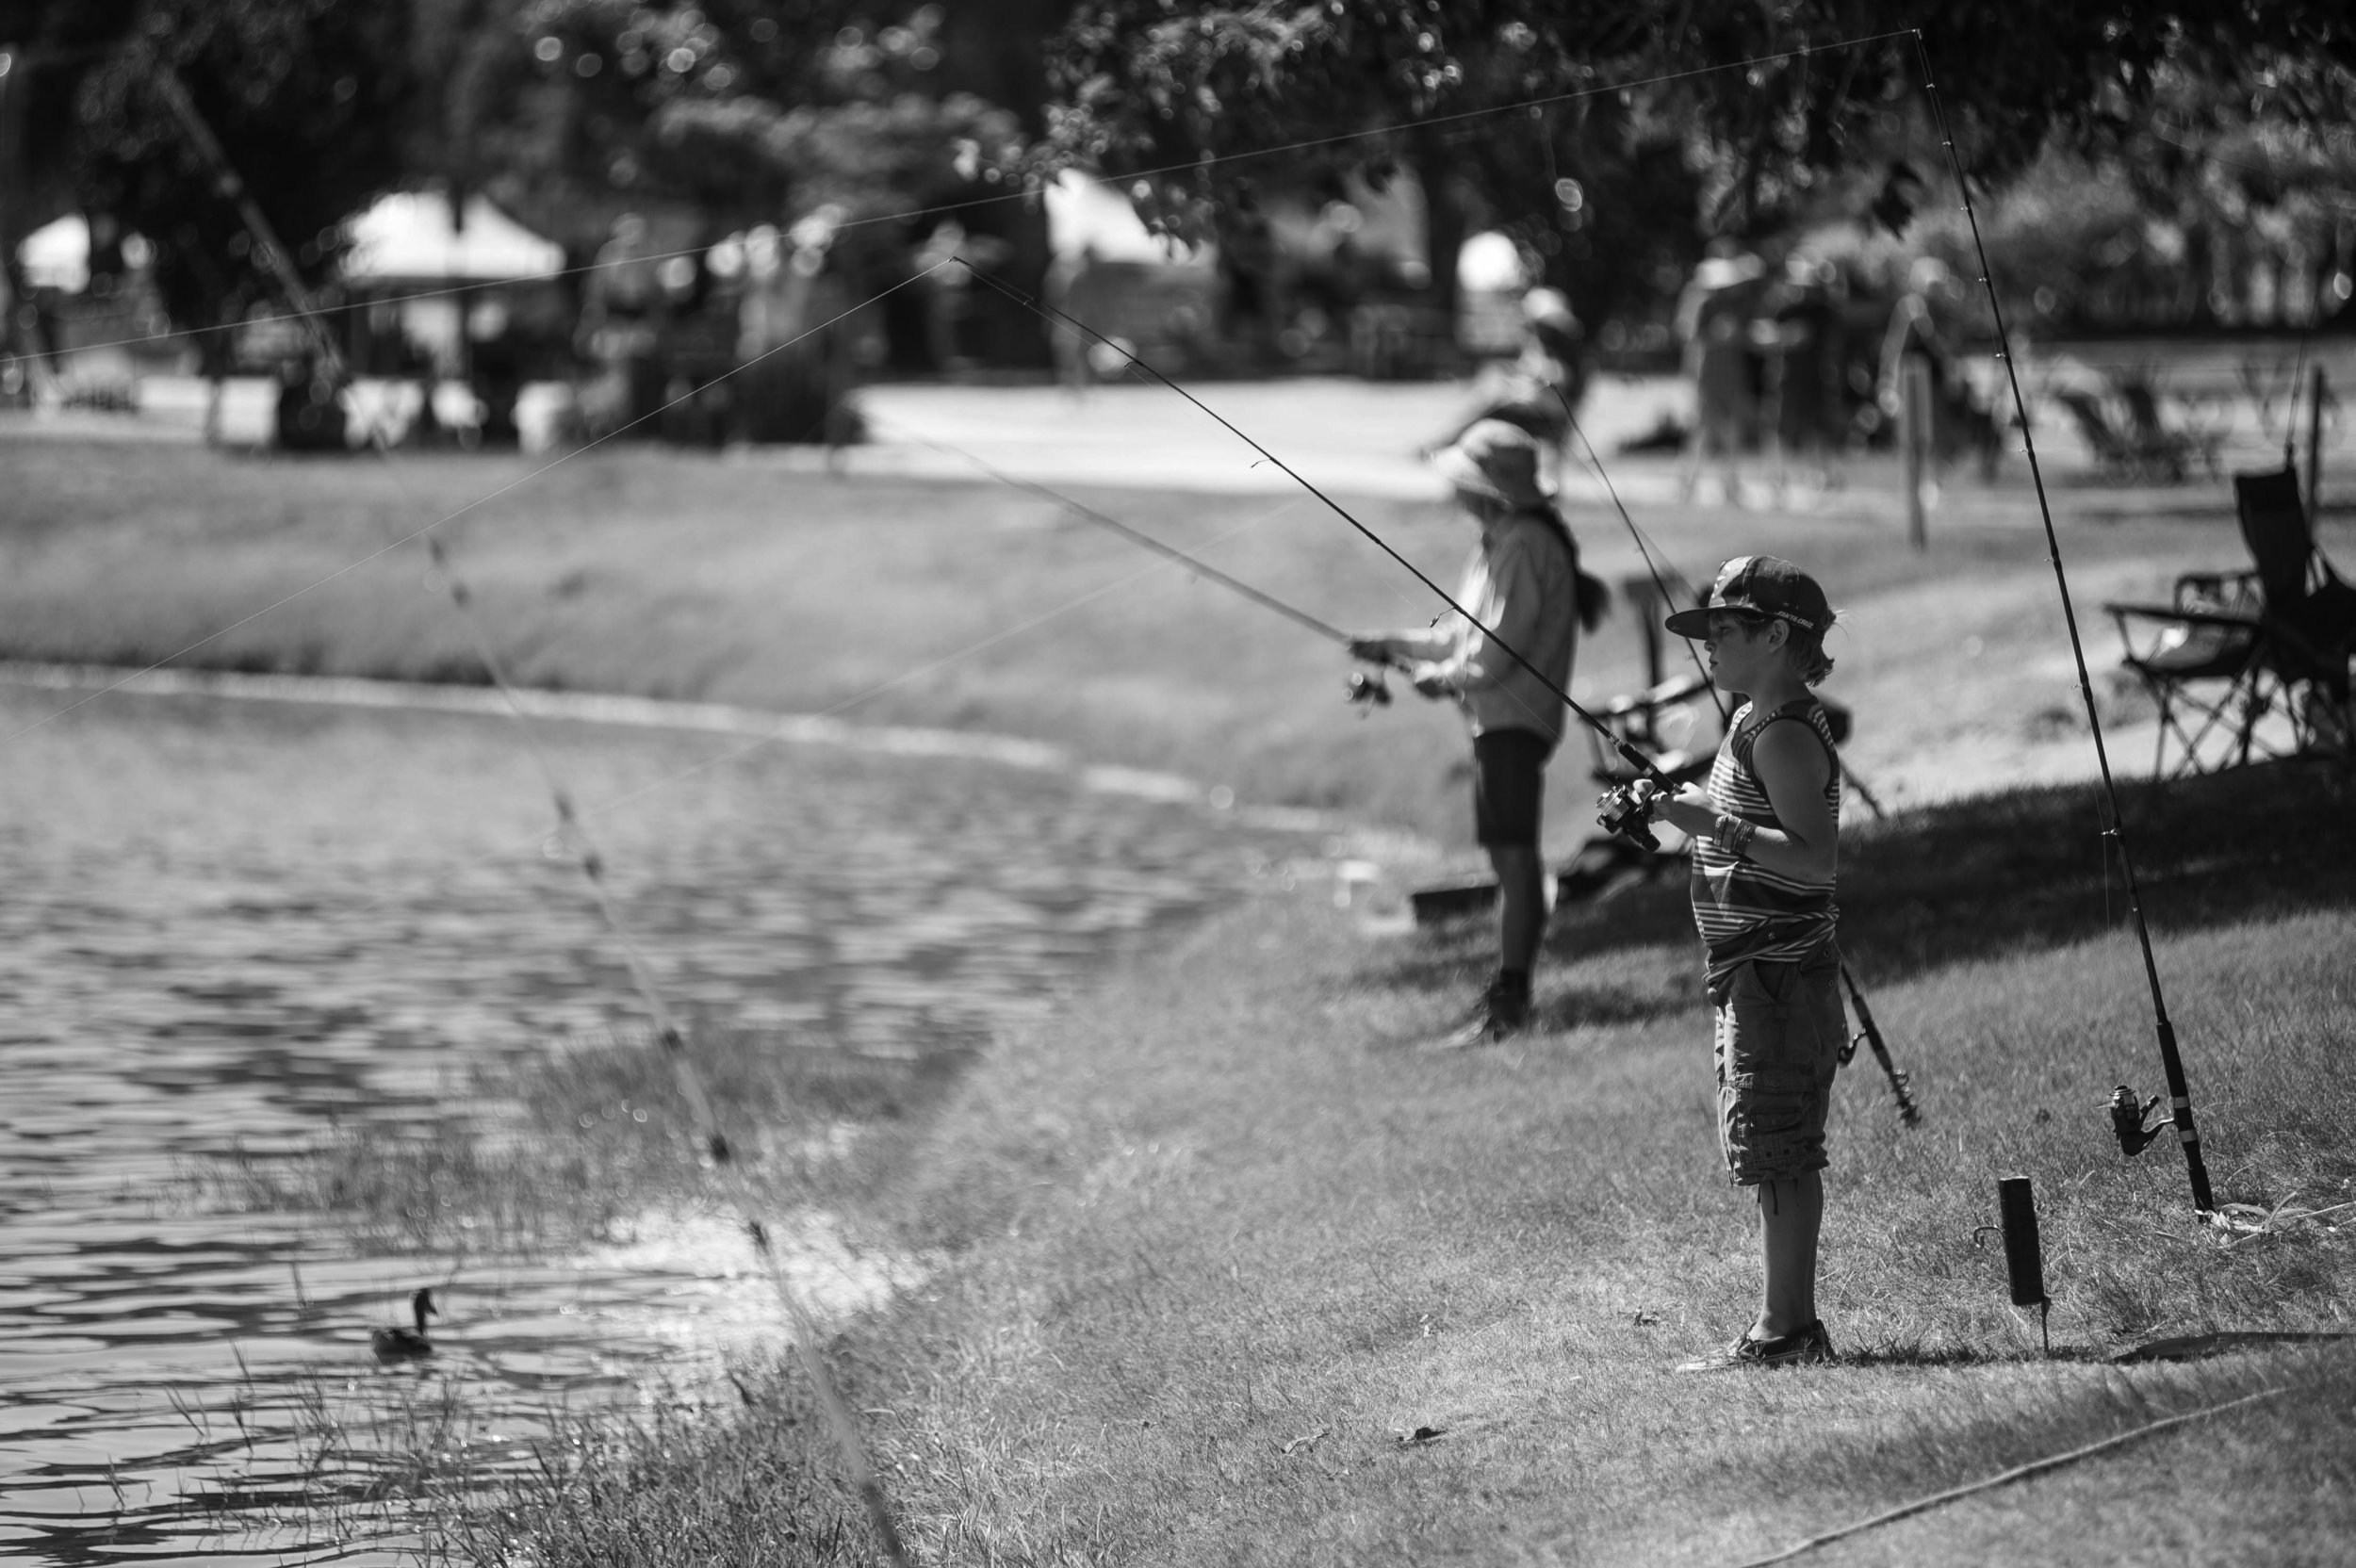 Fishing - Our Festival grounds offer two lakes for year-round catfish and trout fishing. So bring your poles and tackle. A State of California Fishing License is required to fish at the park and can be purchased online at the California Department of Fish and Game or at local sporting goods retailers such as BassPro Shops or Big 5 Sporting Goods.